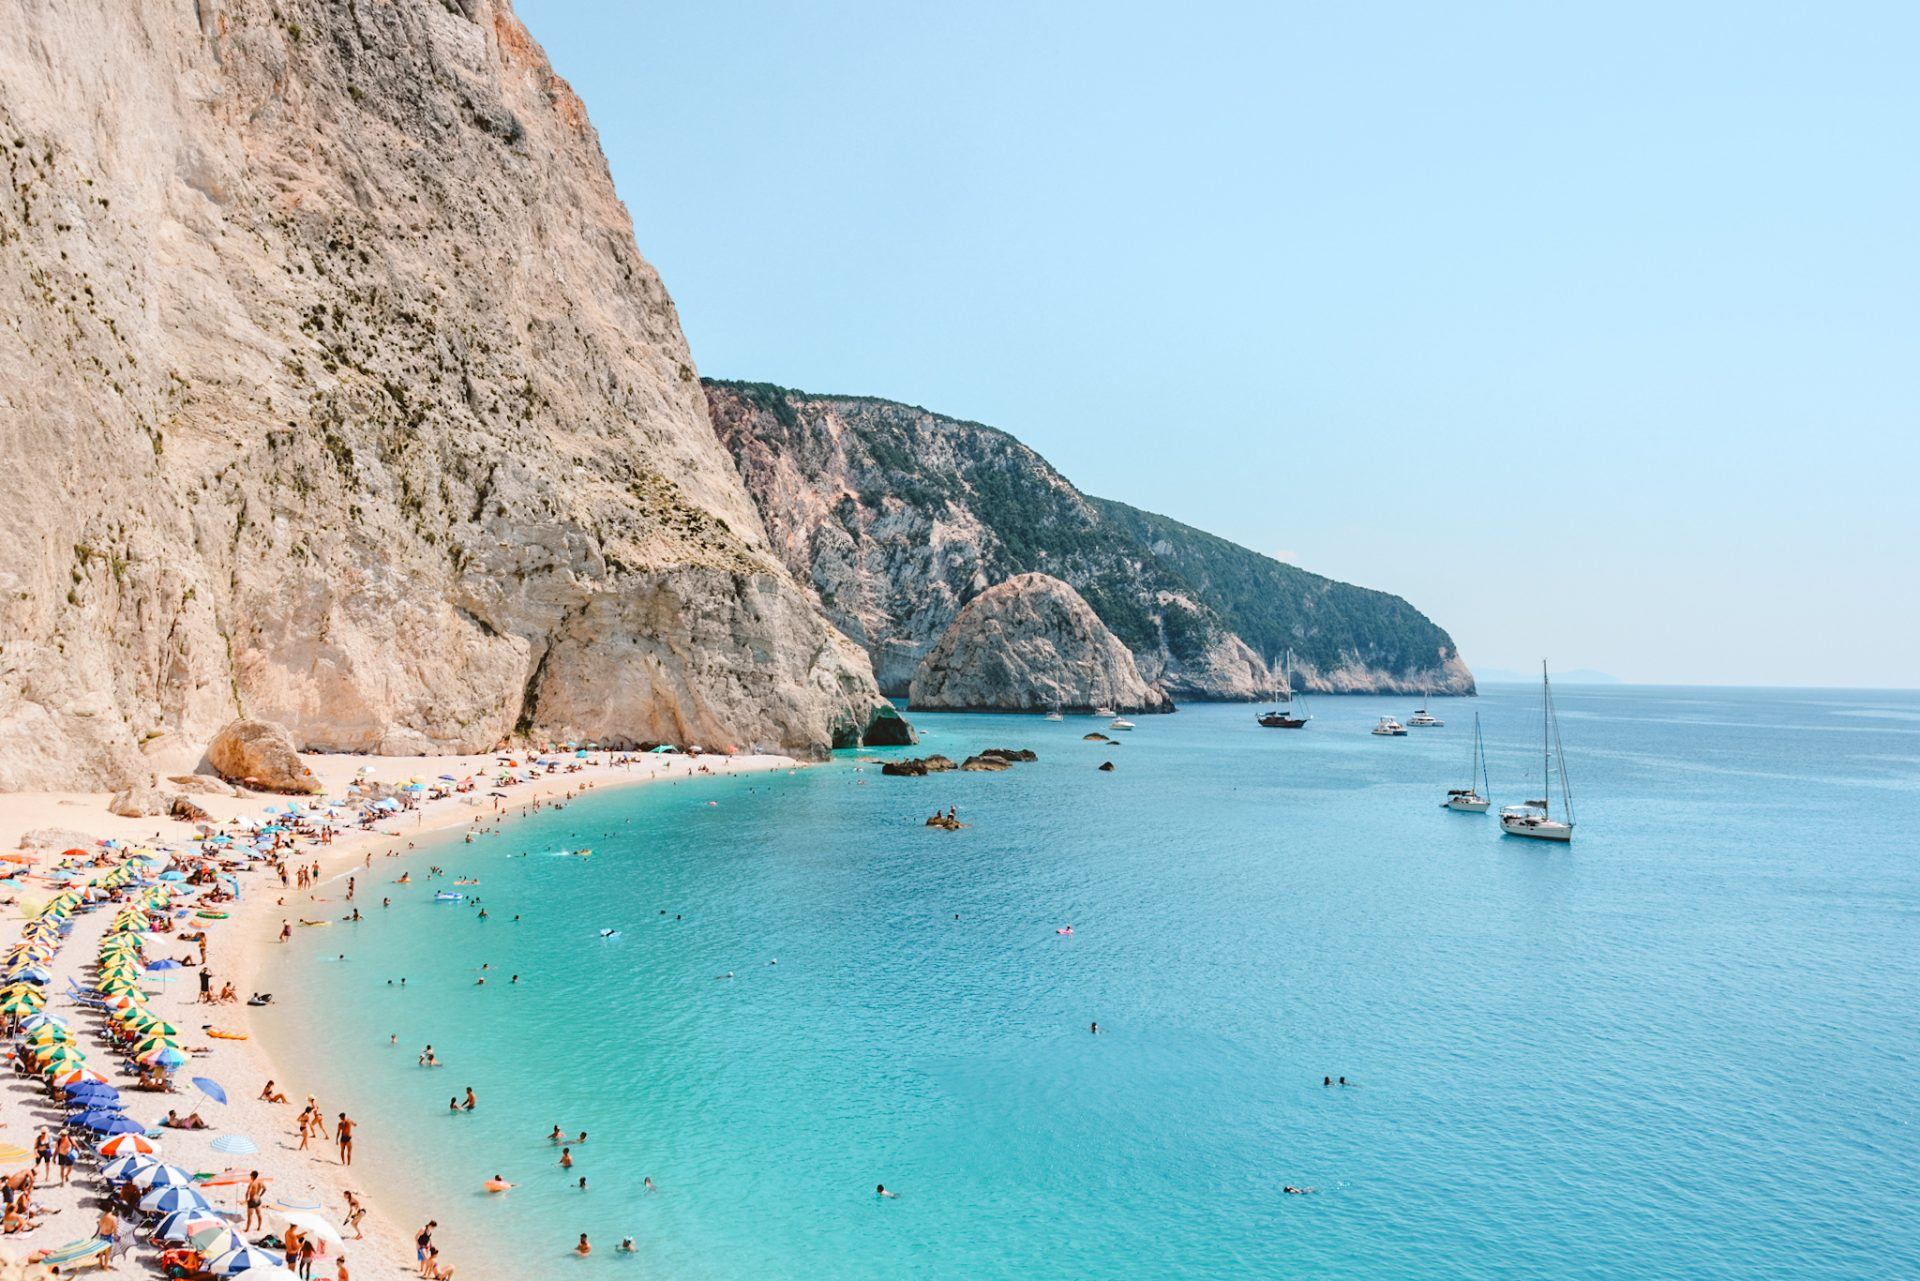 Top beaches in Lefkada, Greece